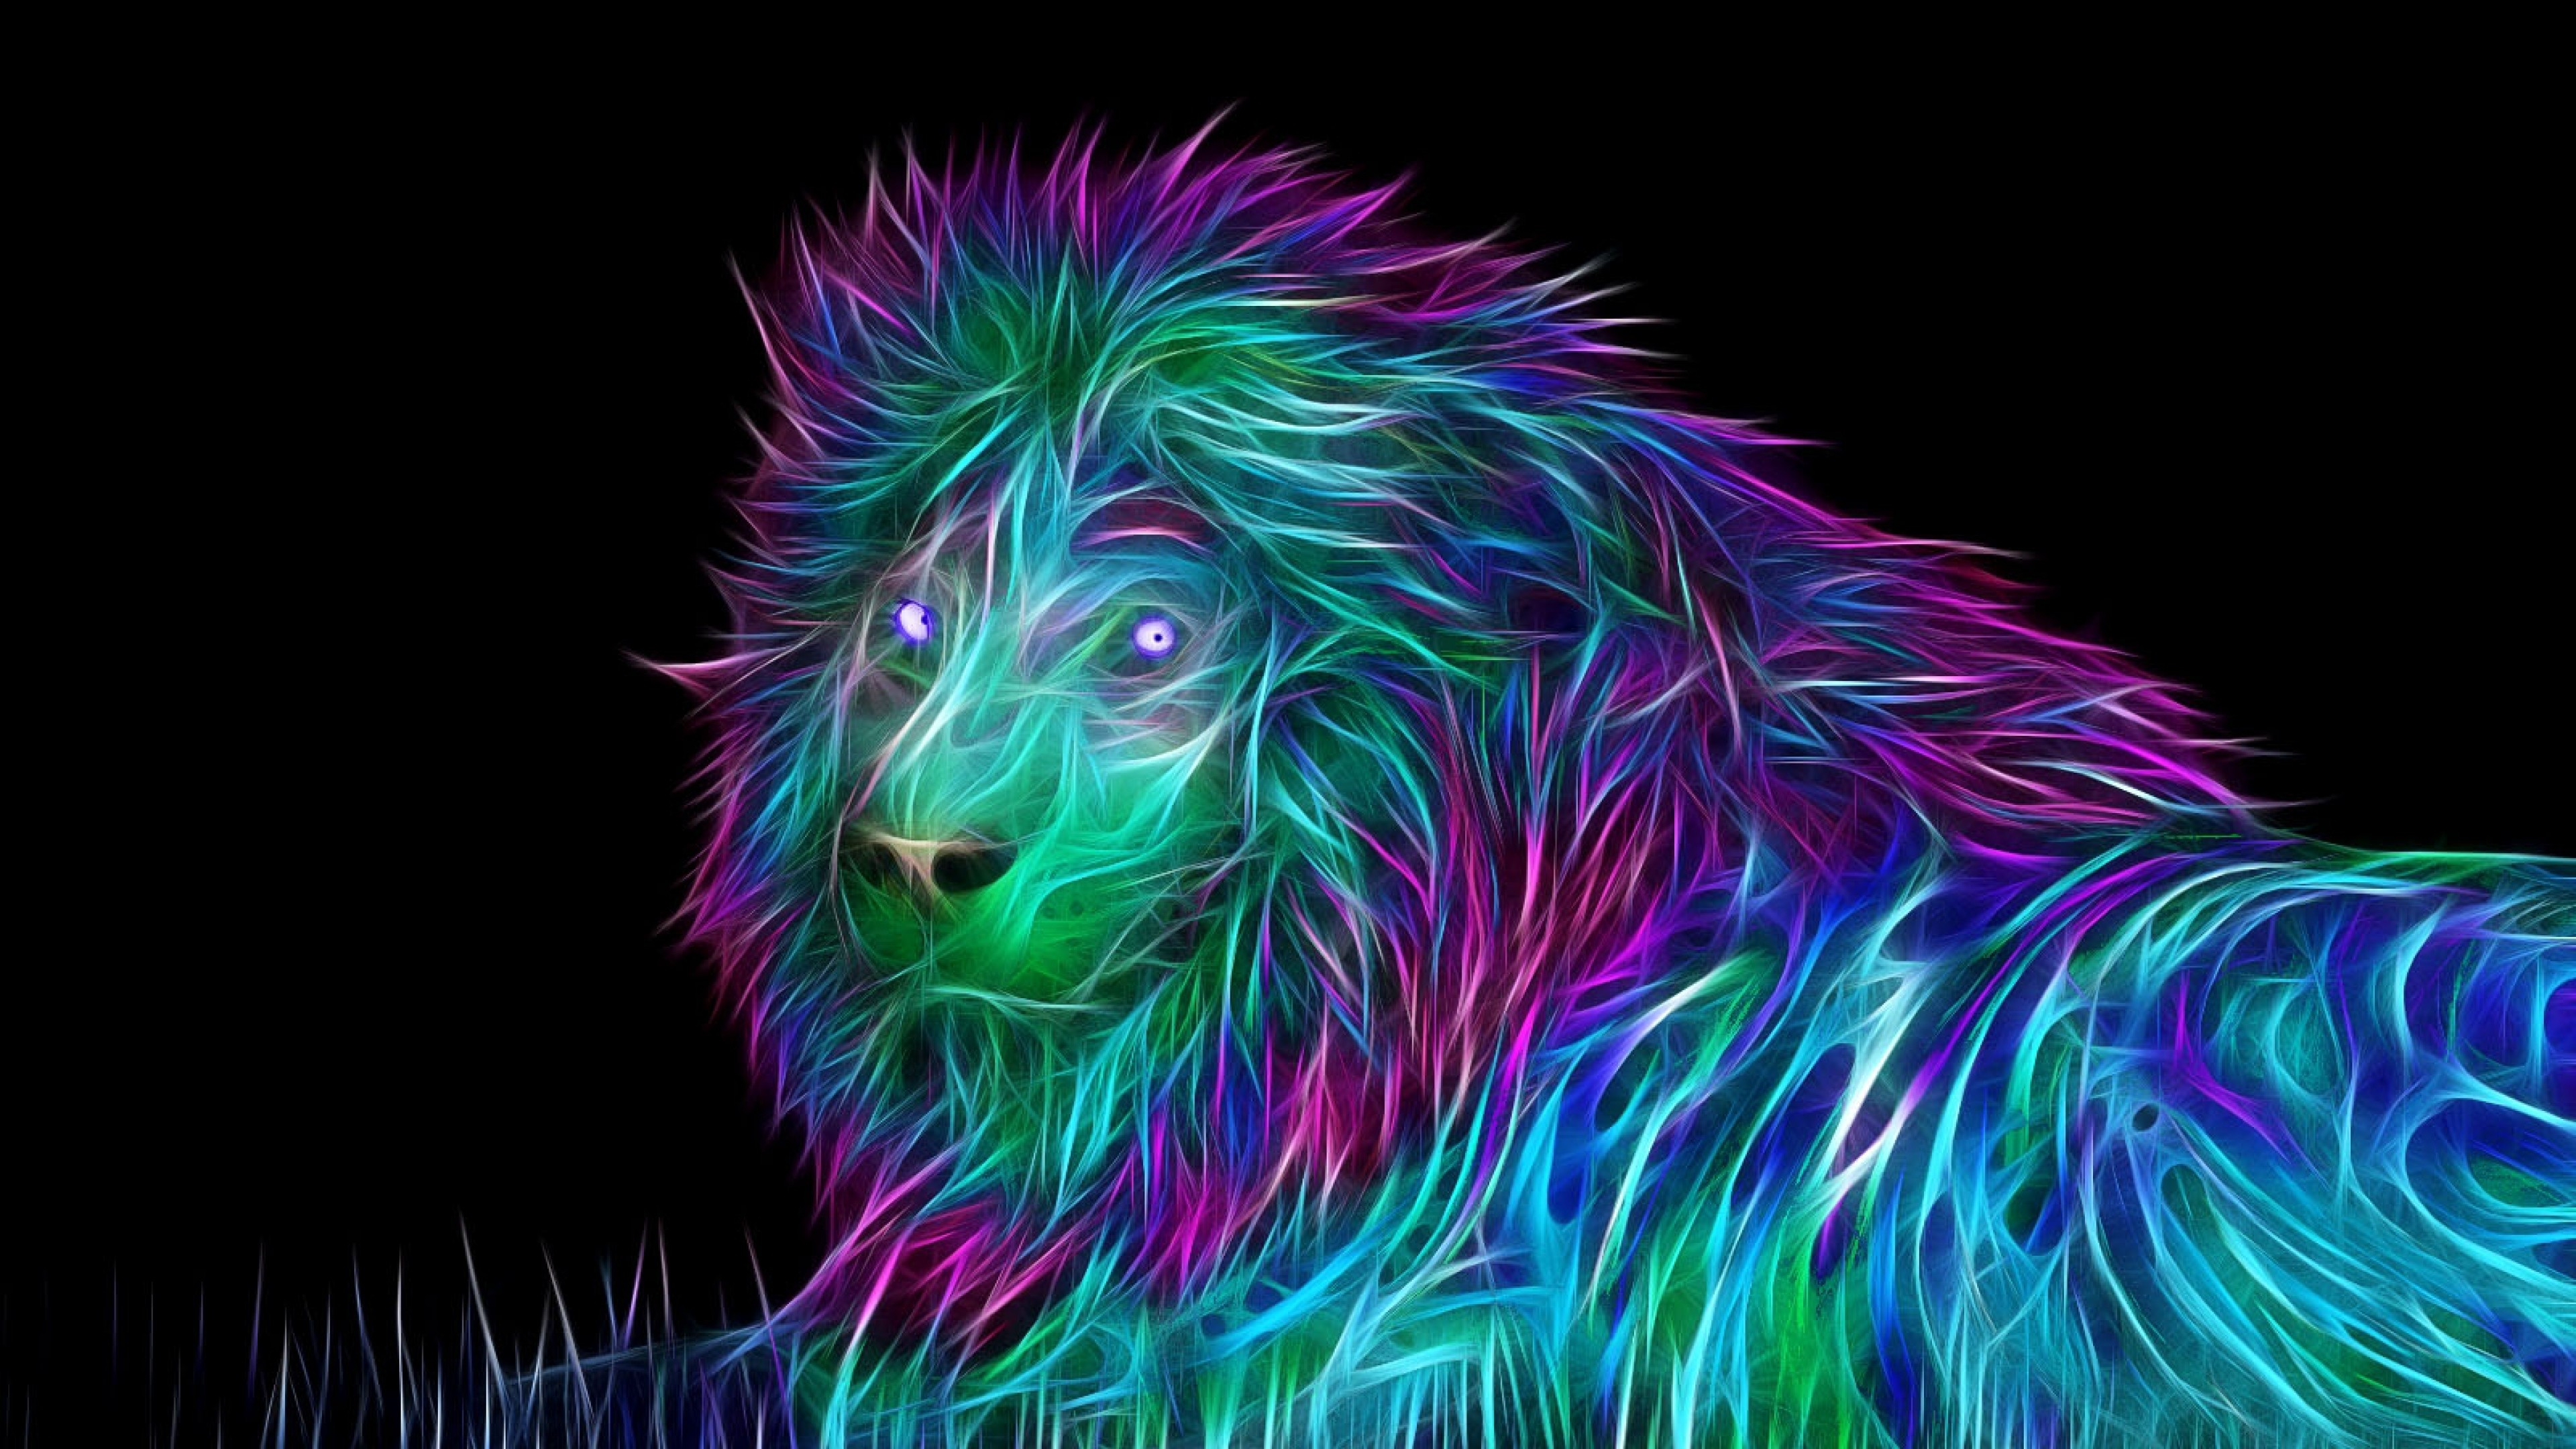 An Abstract Fractal Lion Background DOWNLOAD in FULL QUALITY at https:// wallpaper.